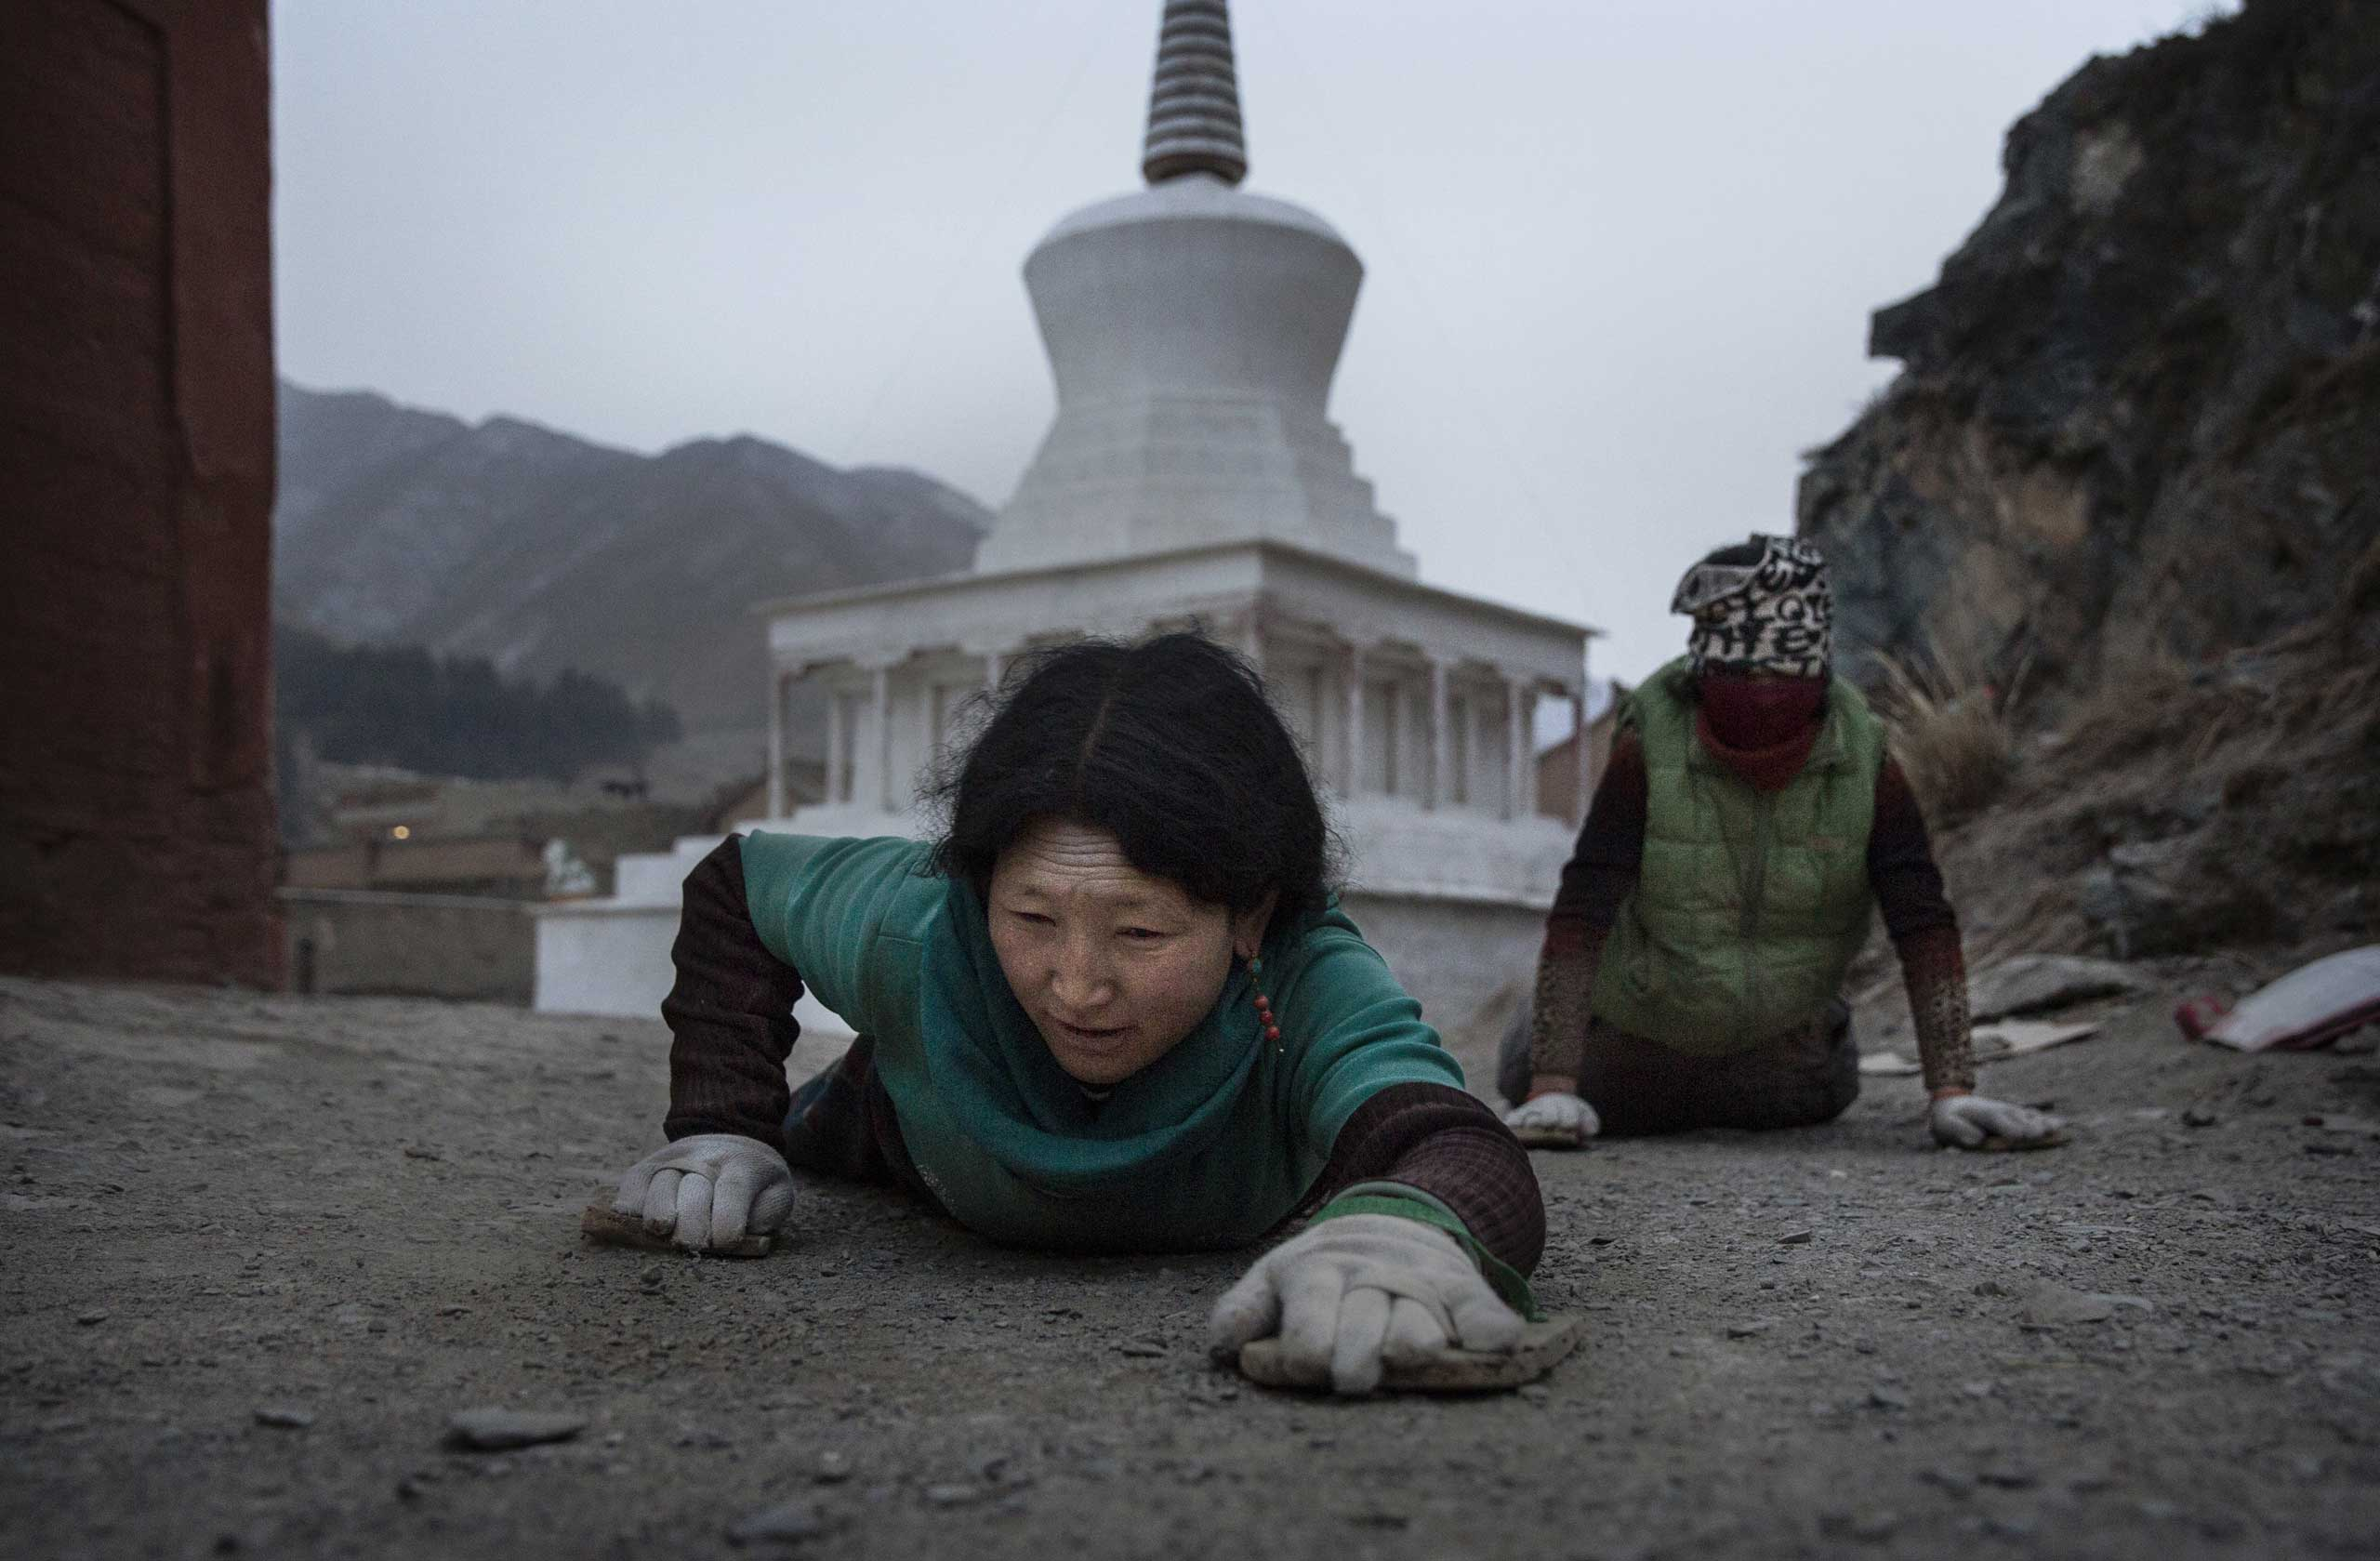 A Tibetan Buddhist prostrates on the ground during a pilgrimage for Monlam or Great Prayer ritual on March 3, 2015 at the Labrang Monastery.